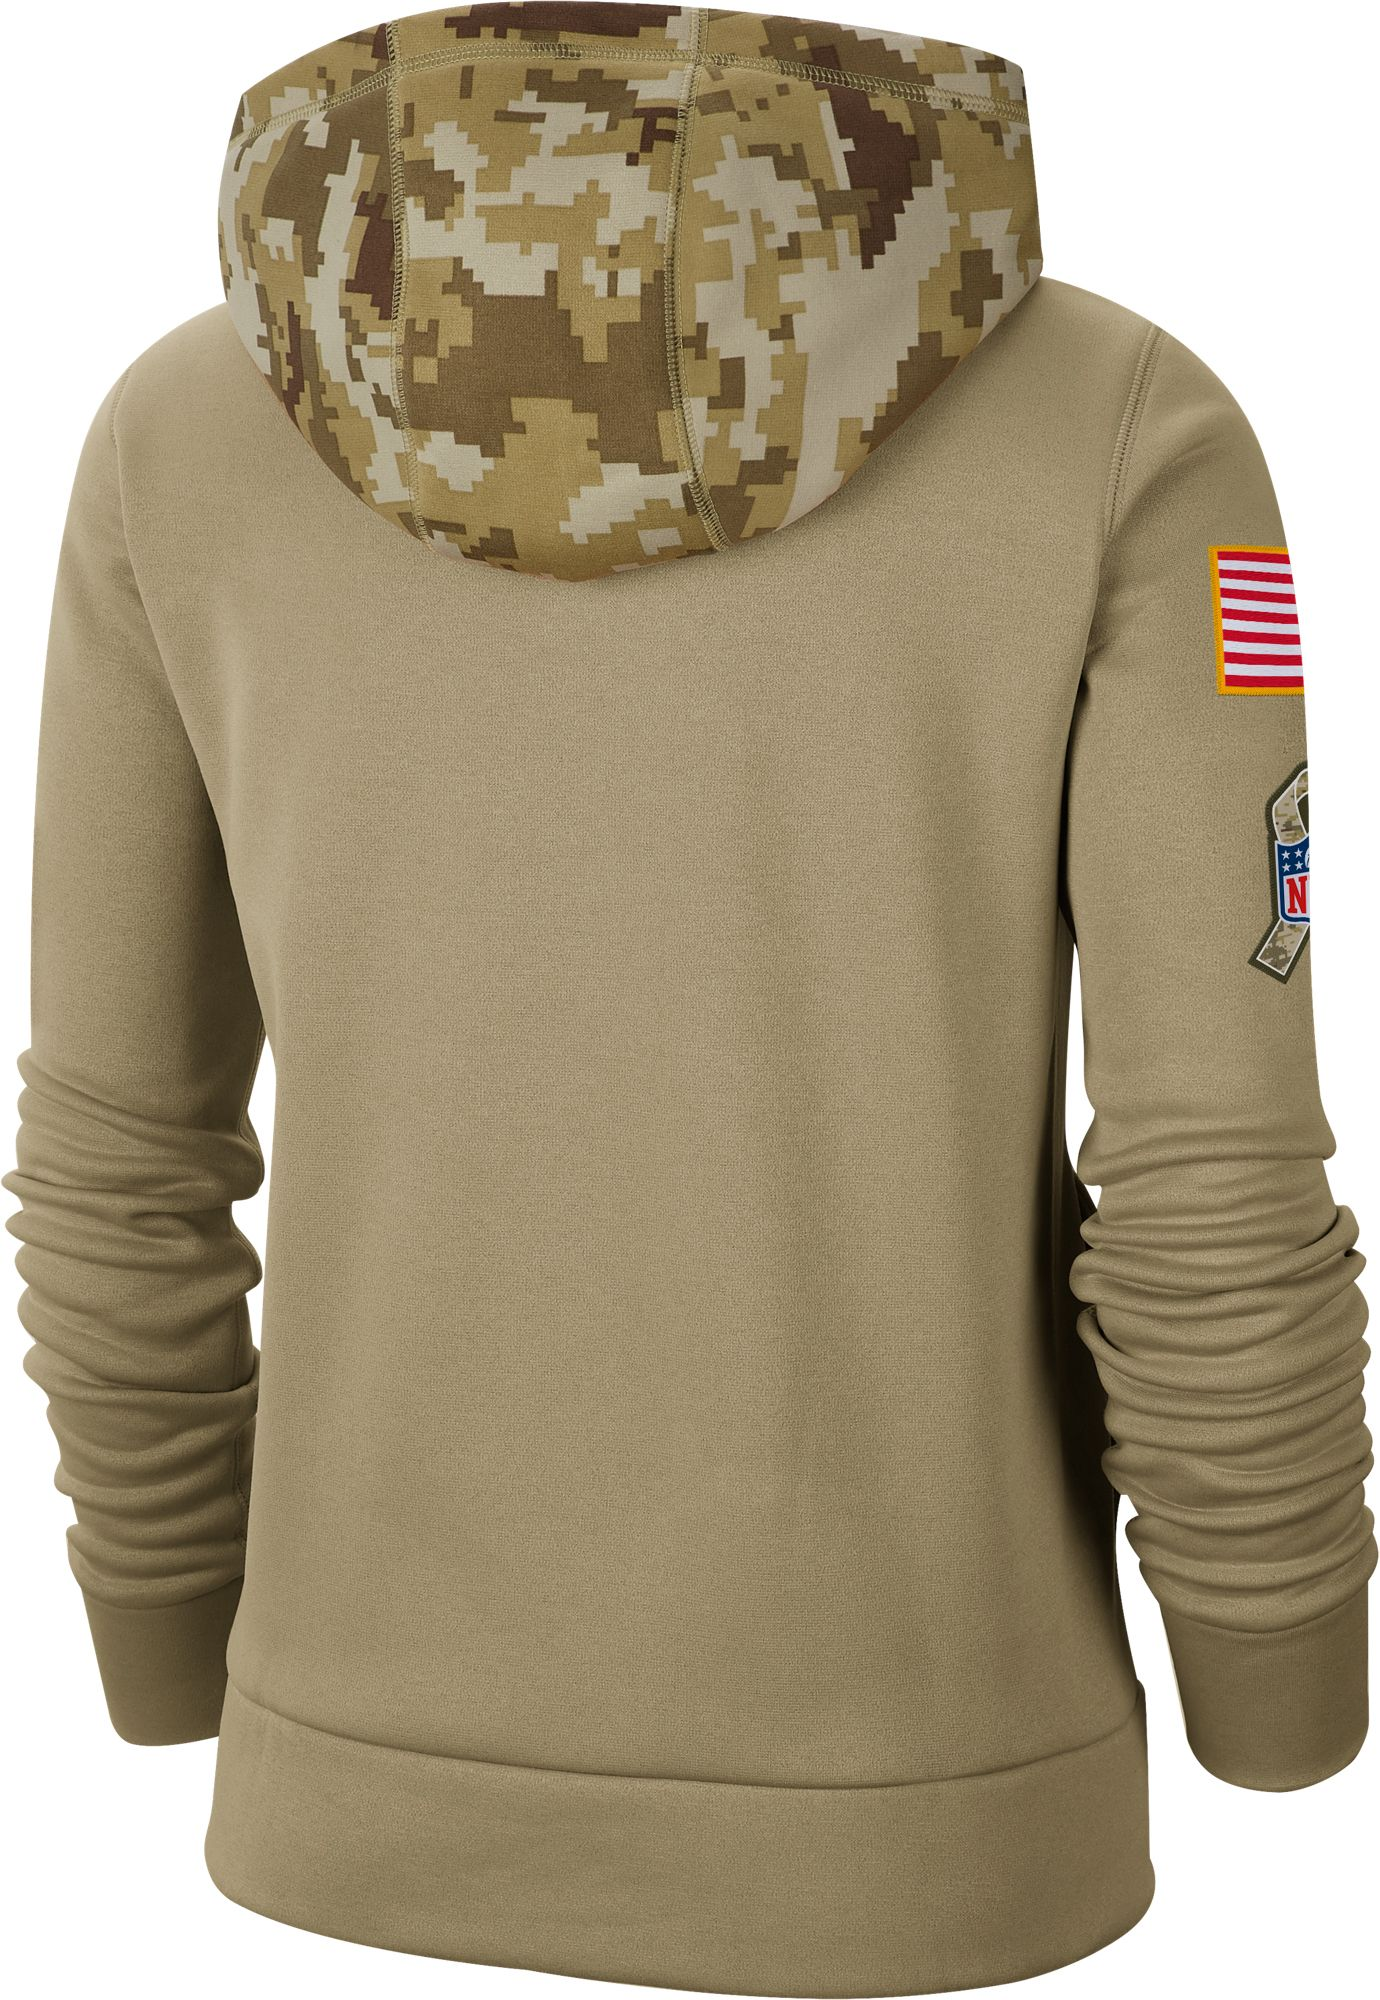 pittsburgh steelers support the troops sweatshirt